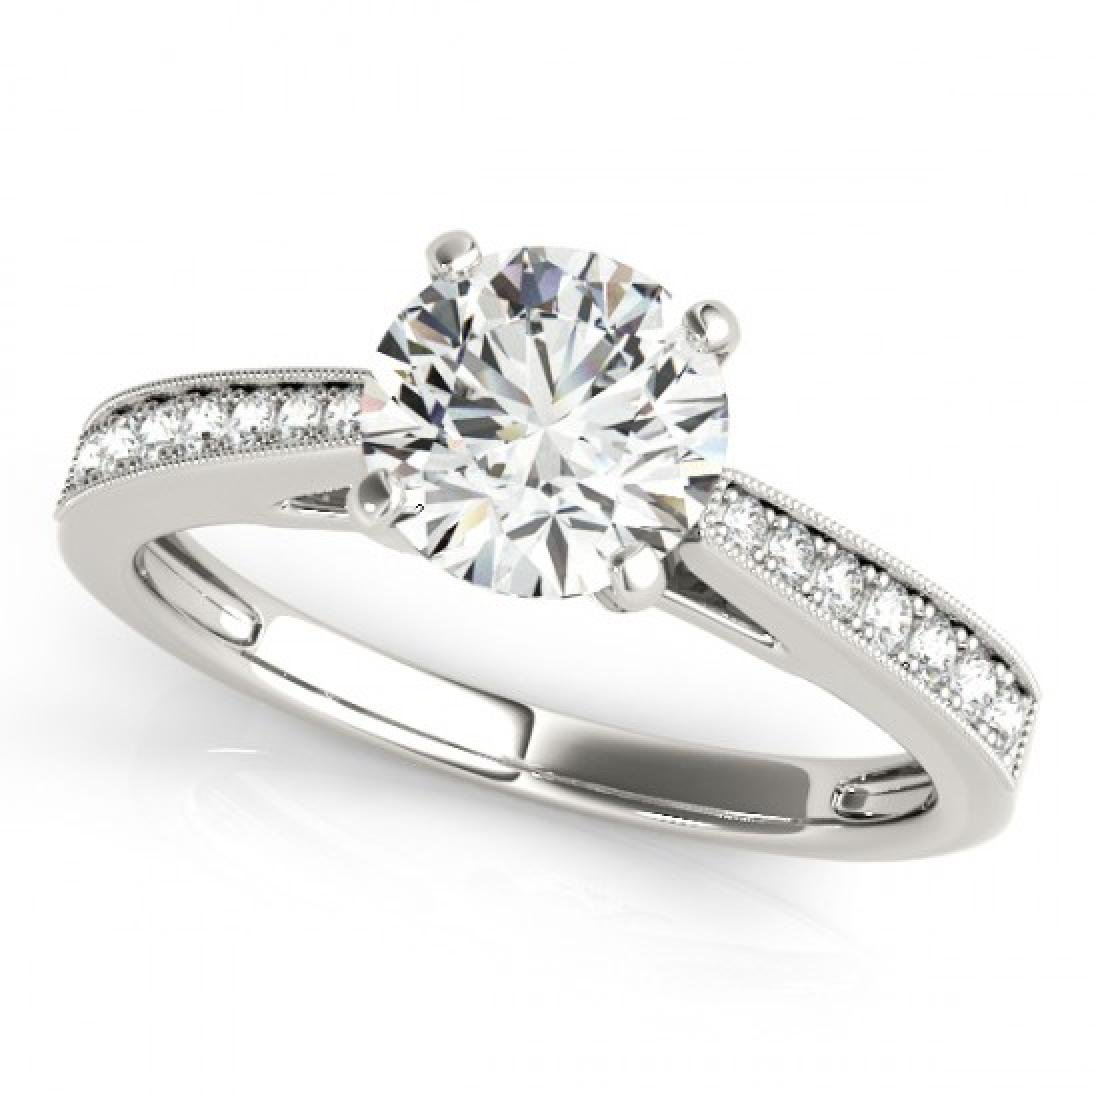 1 CTW Certified VS/SI Diamond Solitaire Ring 14K White